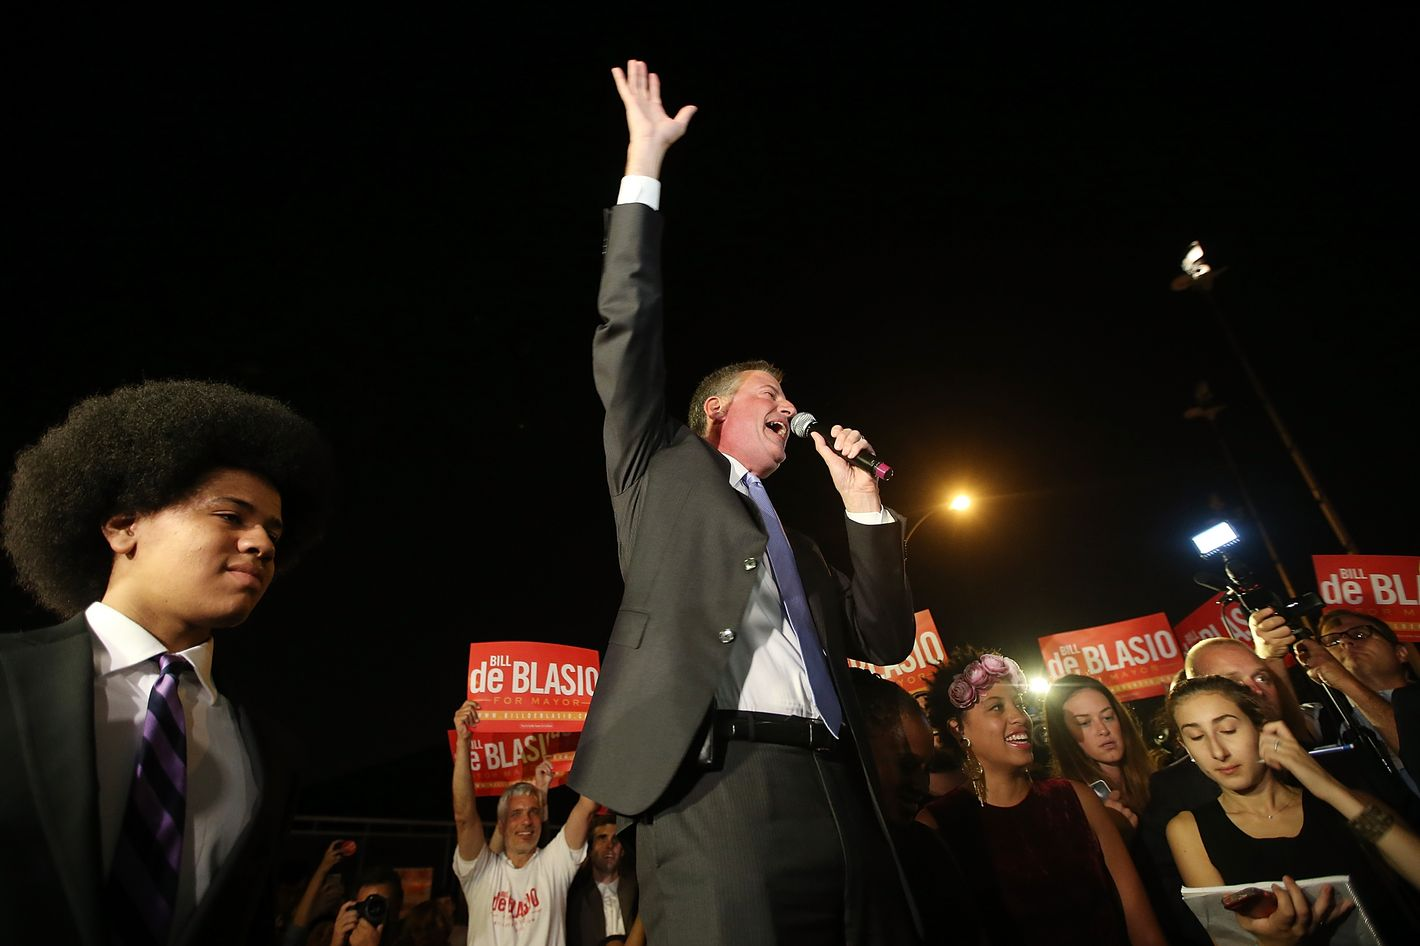 NEW YORK, NY - SEPTEMBER 10:  Democratic candidate for mayor and Public Advocate Bill de Blasio (C) waves to the crowd as his son Dante (L) looks on while arriving at his primary night party on September 10, 2013 in the Brooklyn borough of New York City.  De Blasio is leading the Democratic race, according to exit polls. (Photo by Mario Tama/Getty Images)